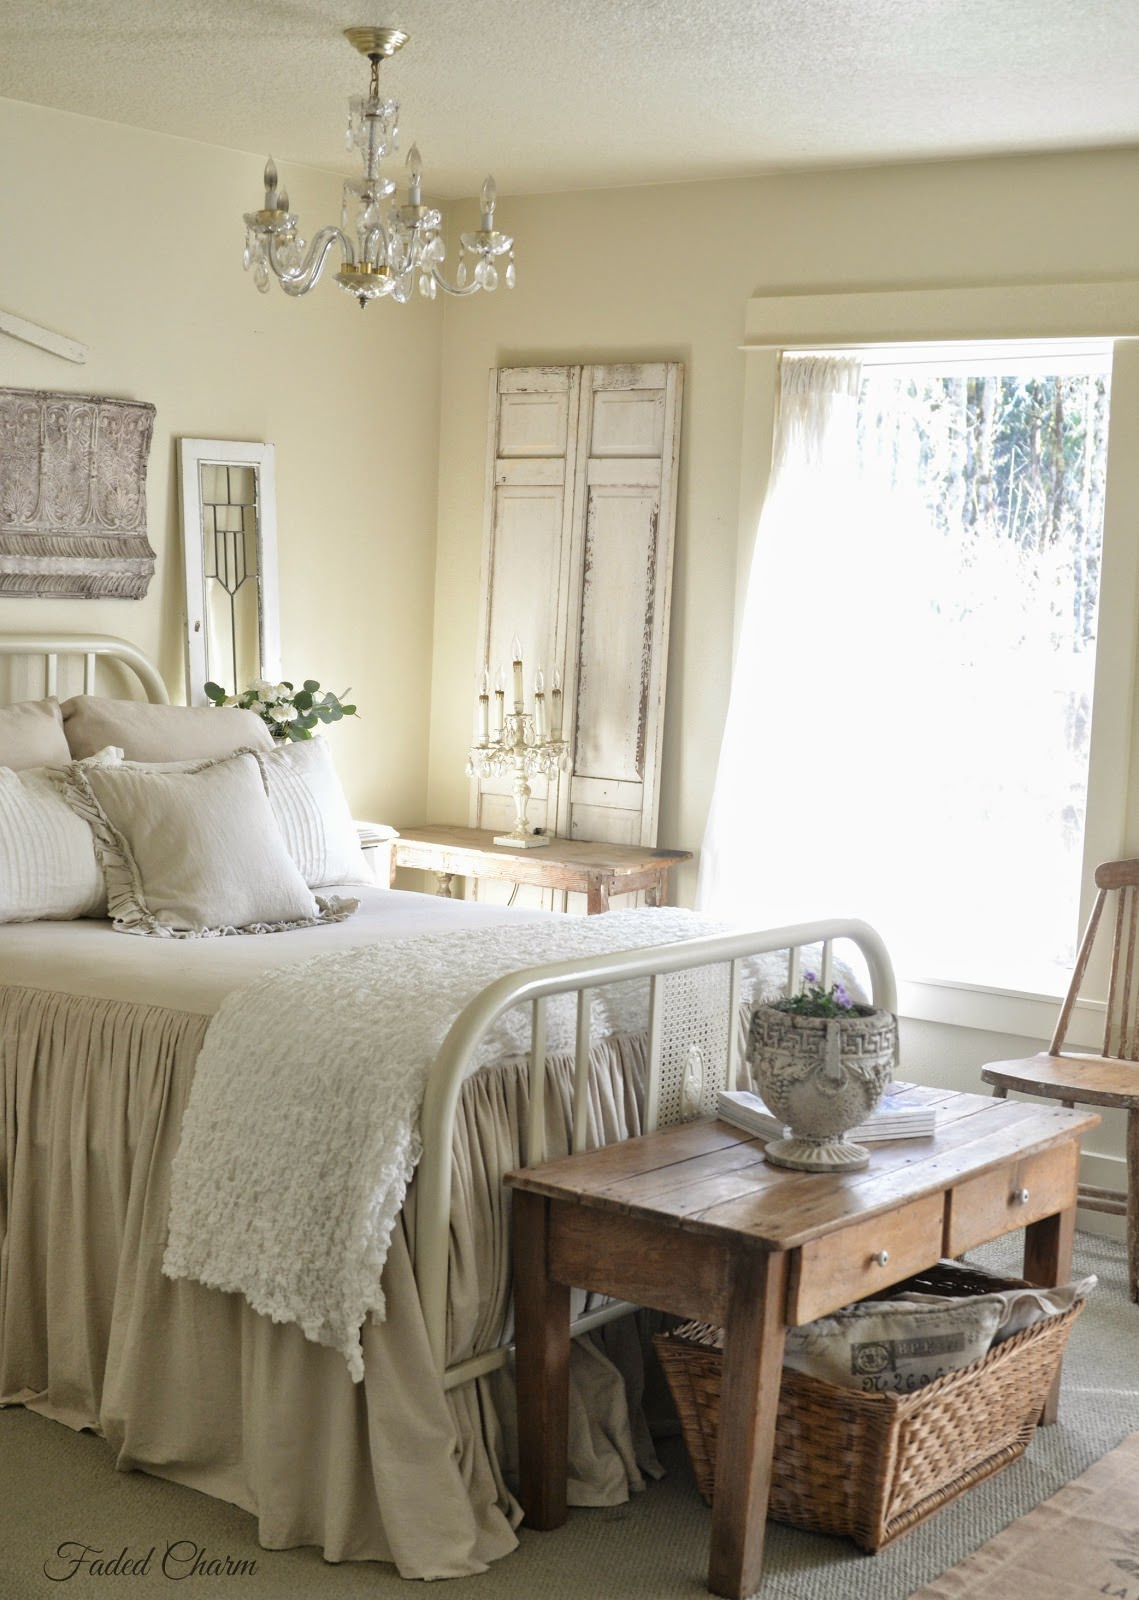 20 beautiful guest bedroom ideas my mommy style - Dormitorios vintage chic ...